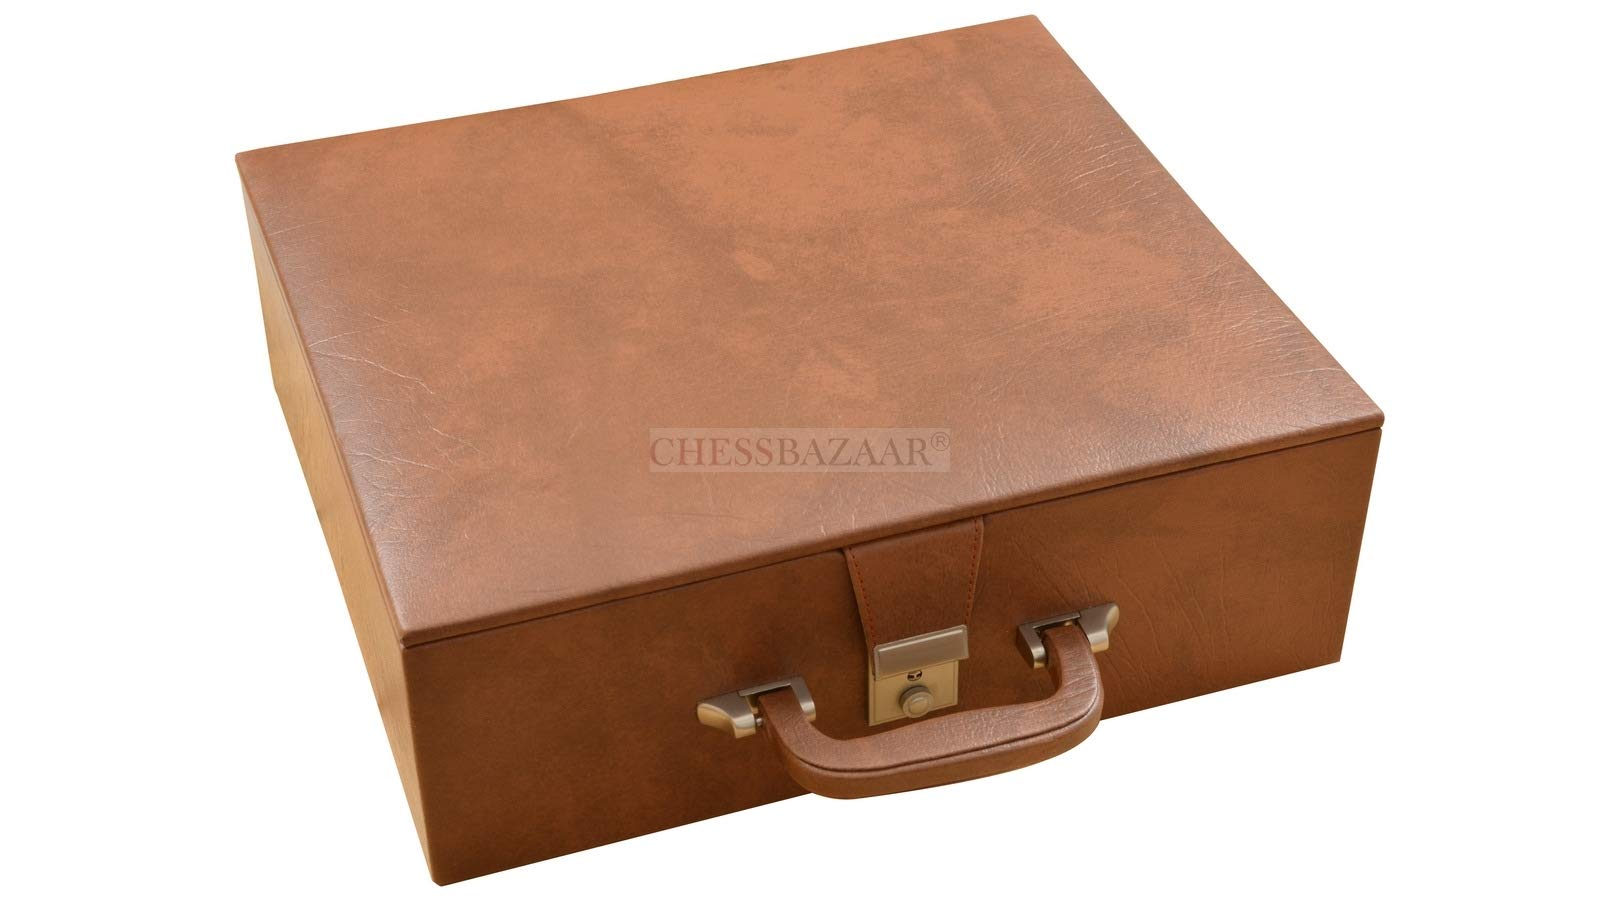 Brown Leatherette Chess Set Storage Box Coffer with Double Tray Fixed Slots for 4.2'' - 4.8'' Pieces by Chessbazaar